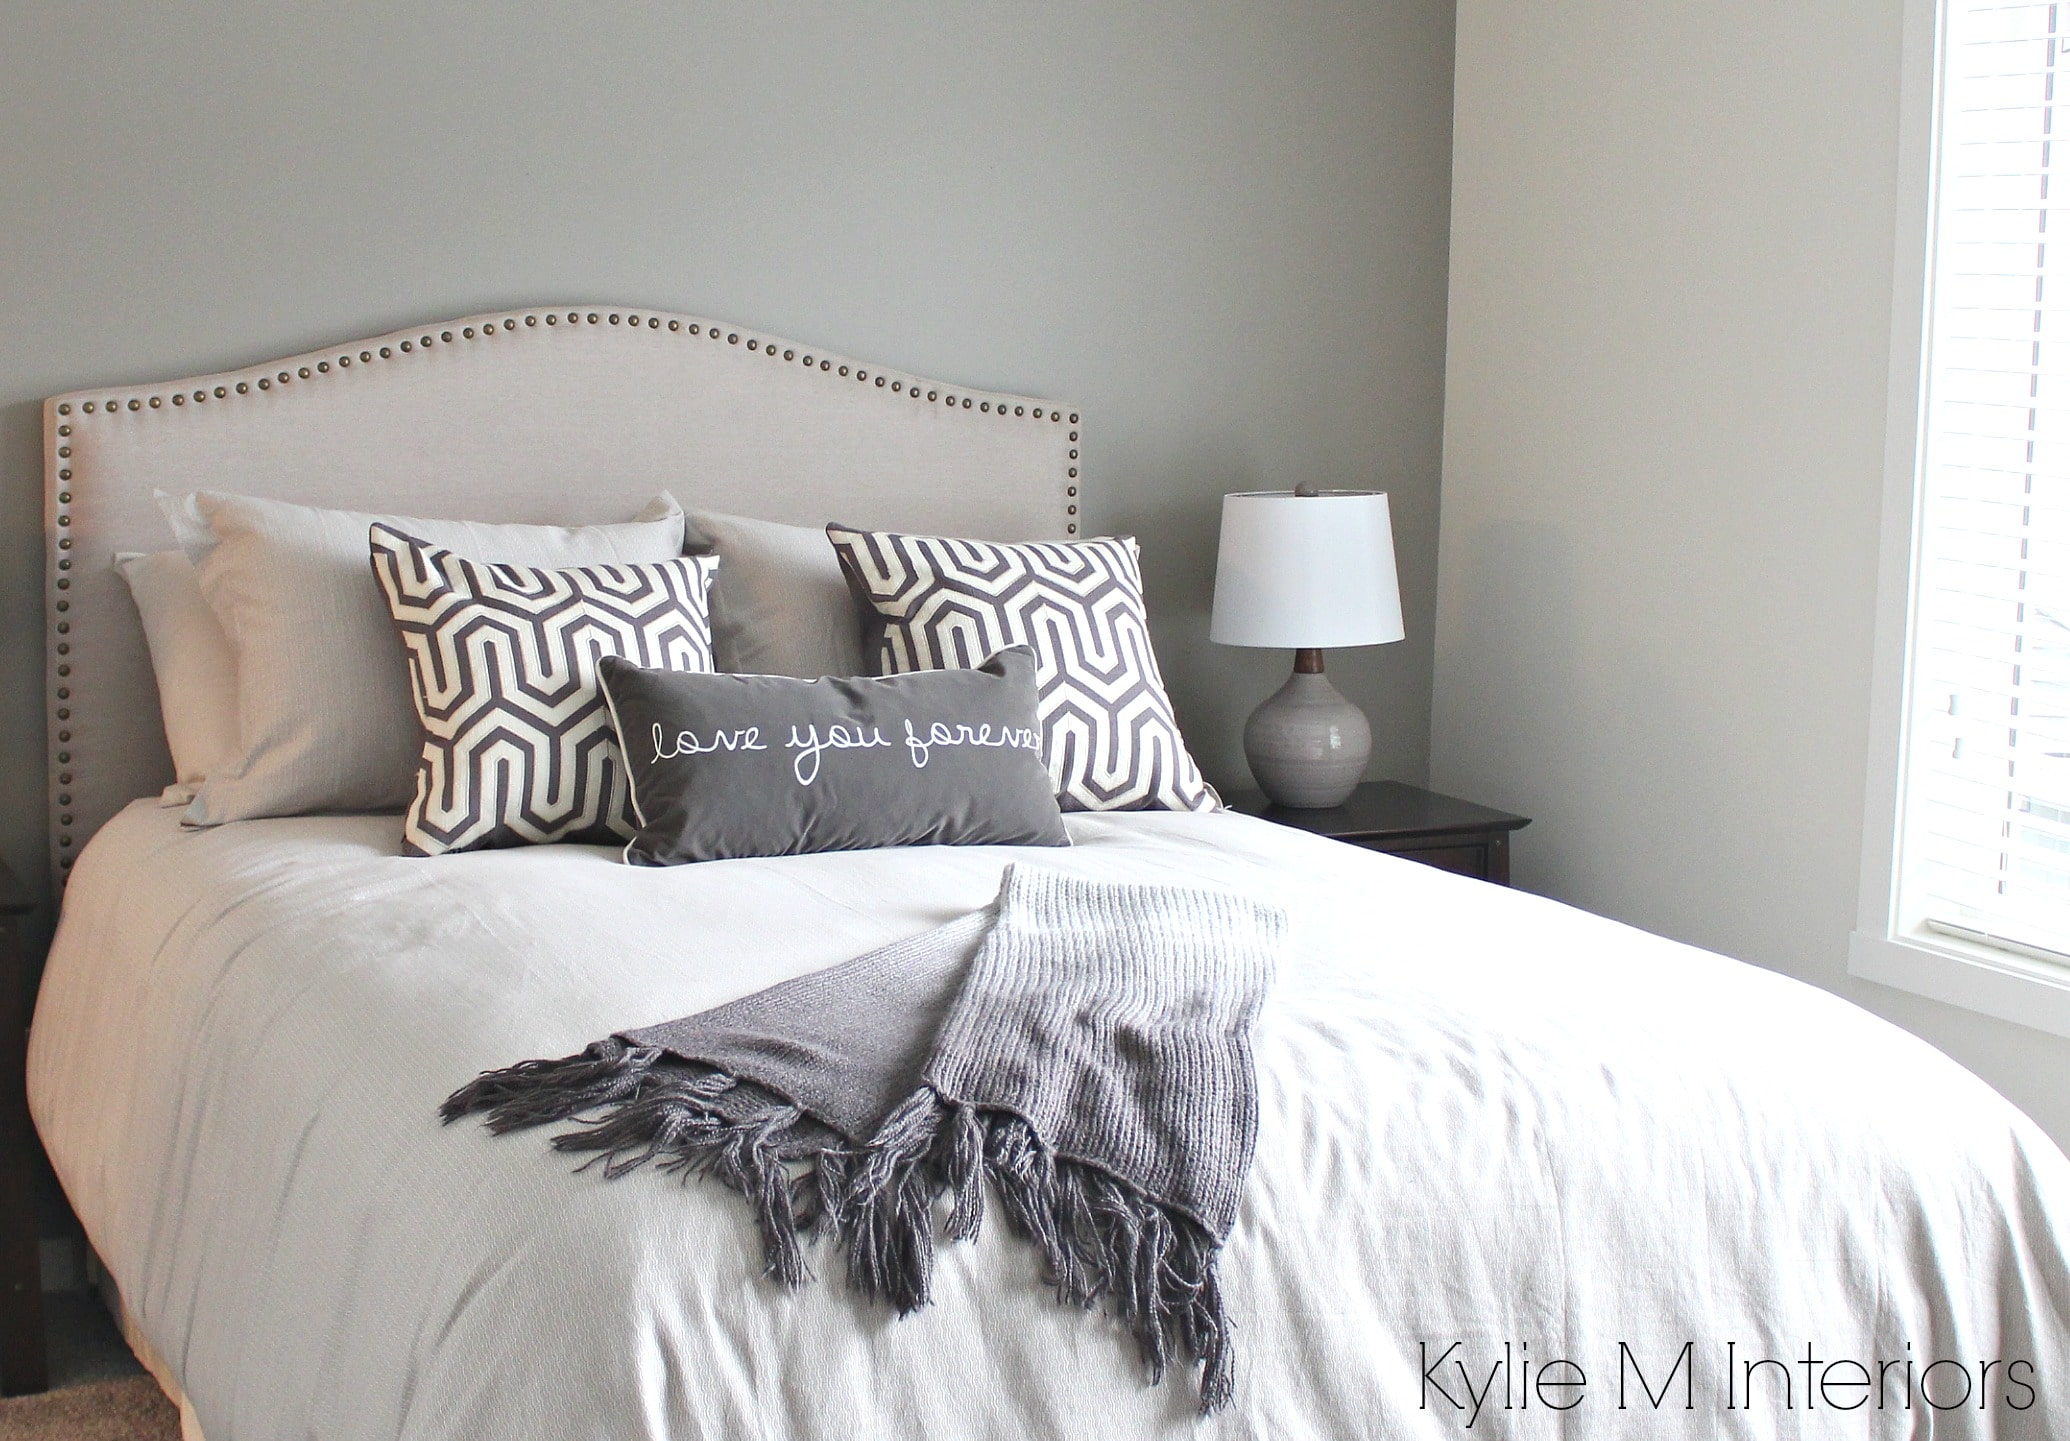 Bedroom with south west exposure painted in gray to accommodate for natural light. Sherwin Williams Dorian Gray feature wall by Kylie M Interiors